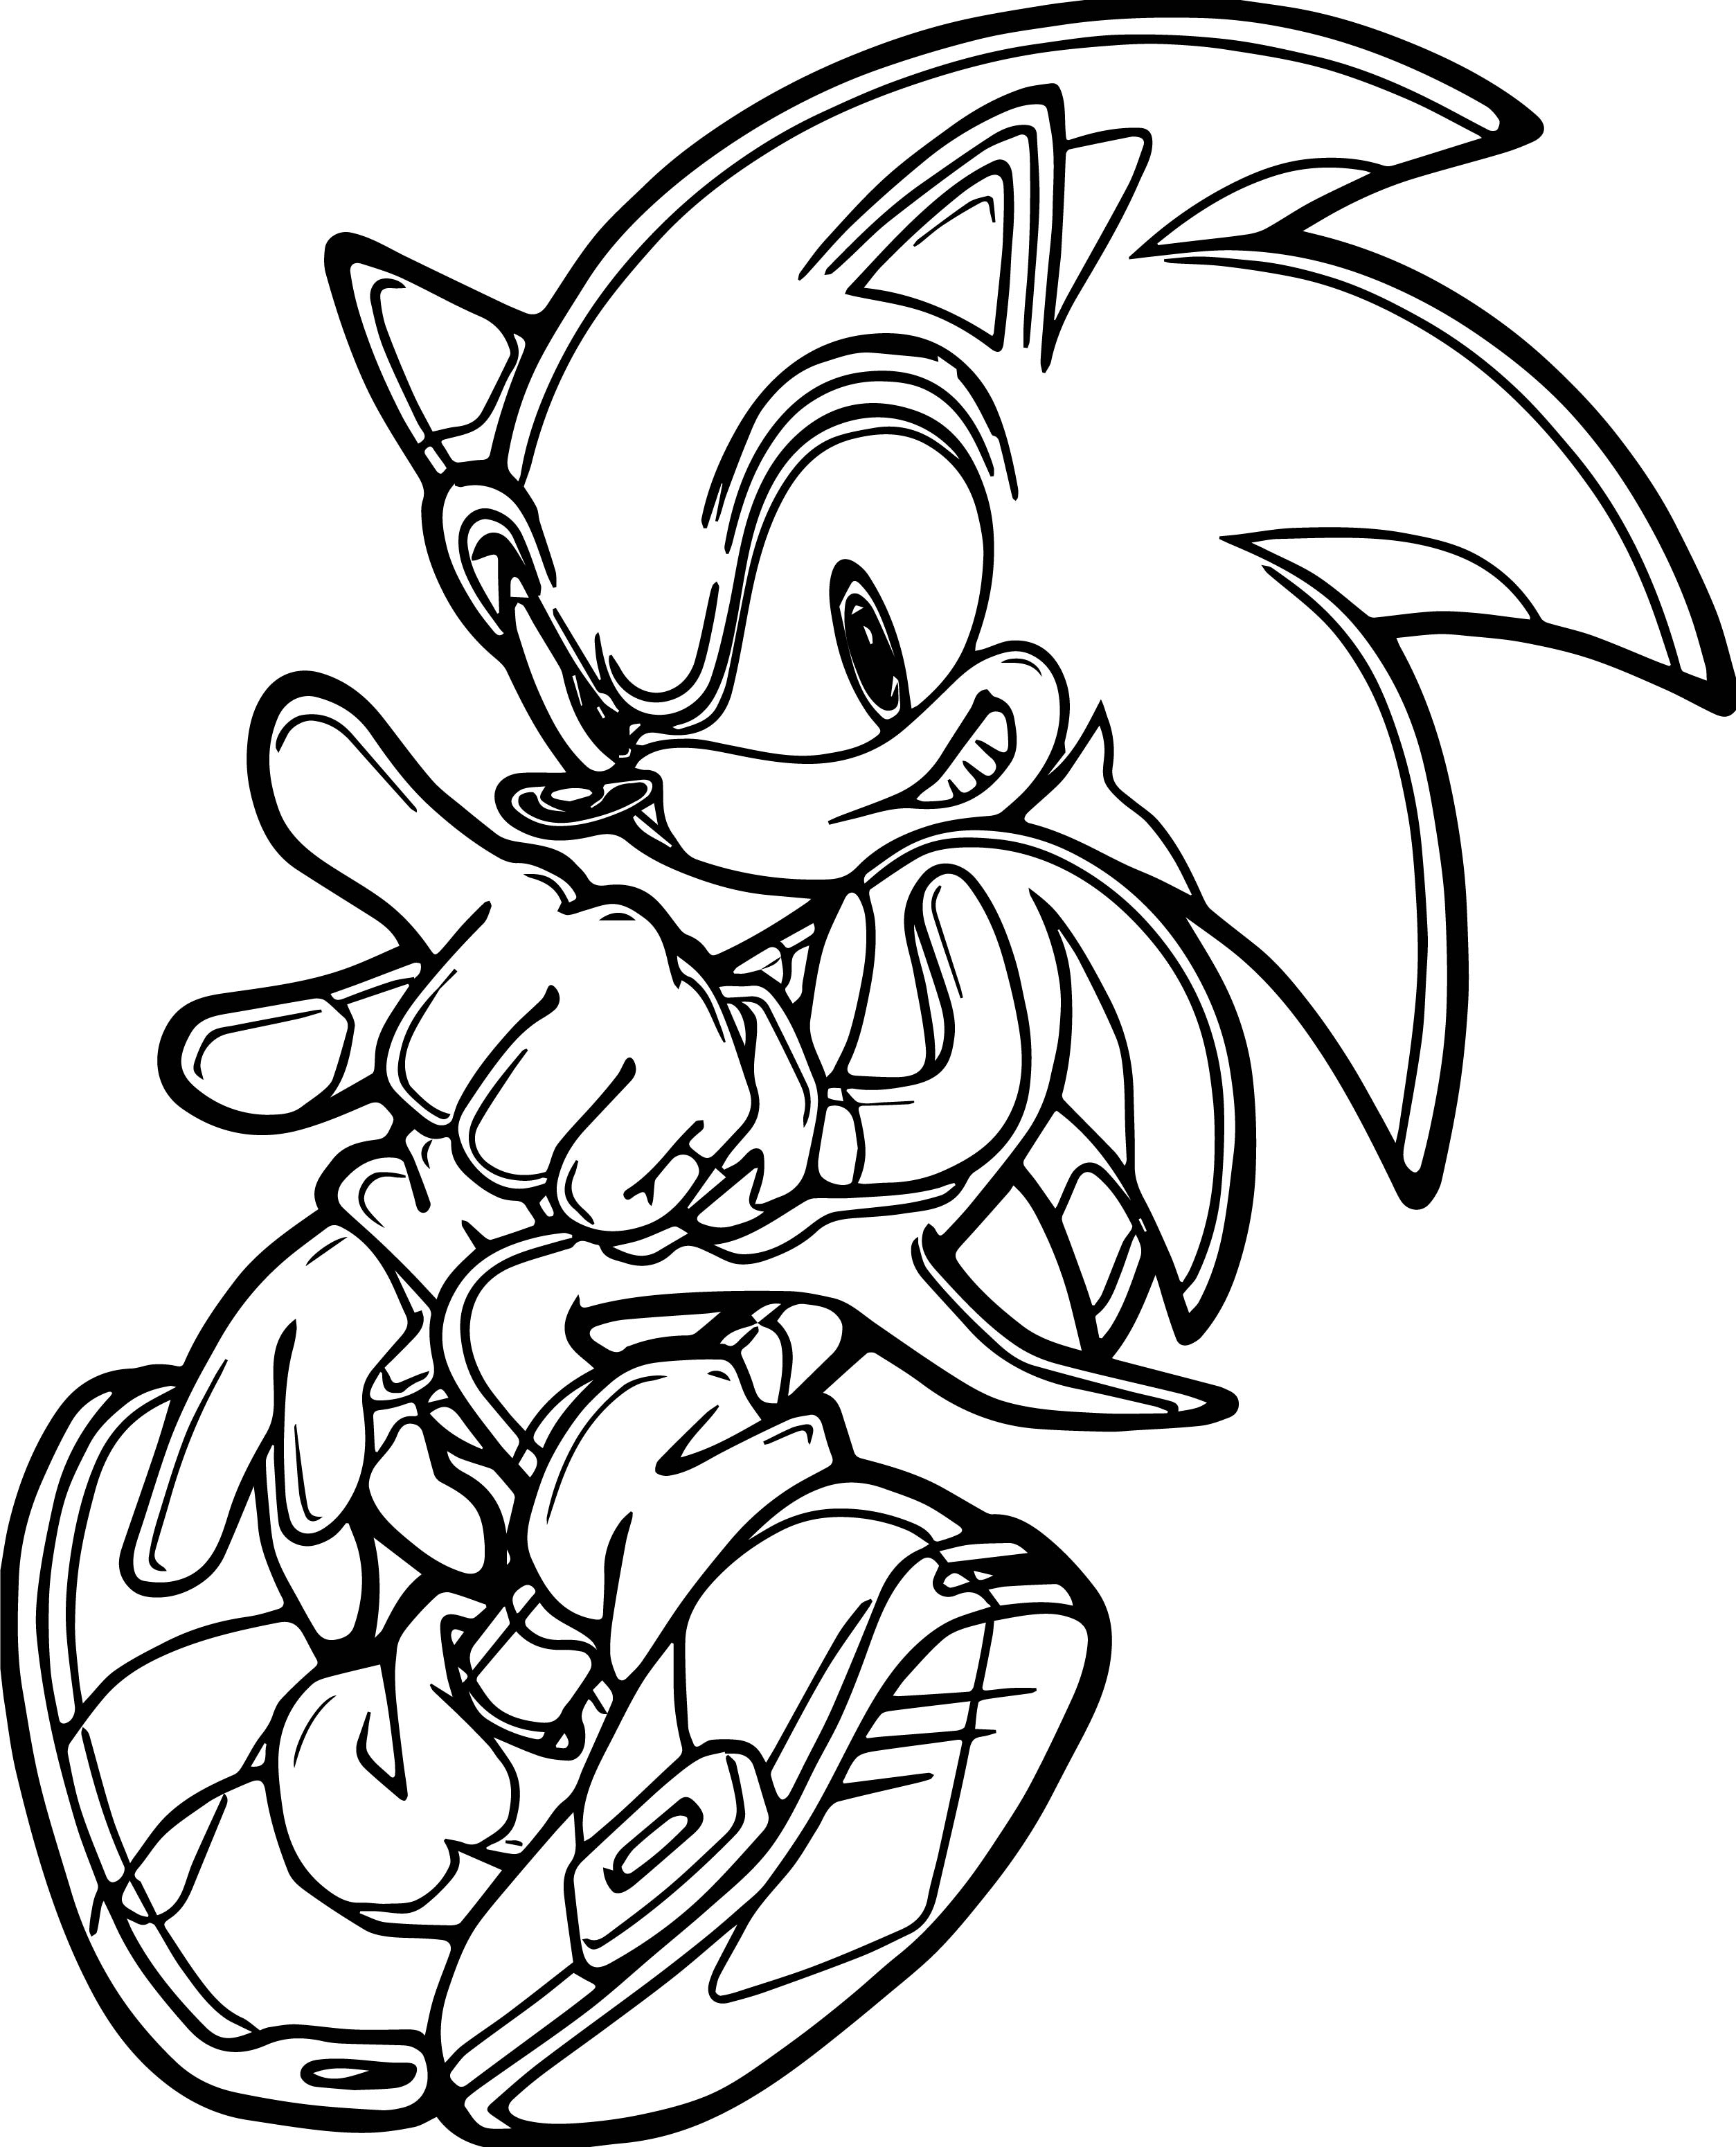 Sonic drawing pictures at free for for Super sonic the hedgehog coloring pages